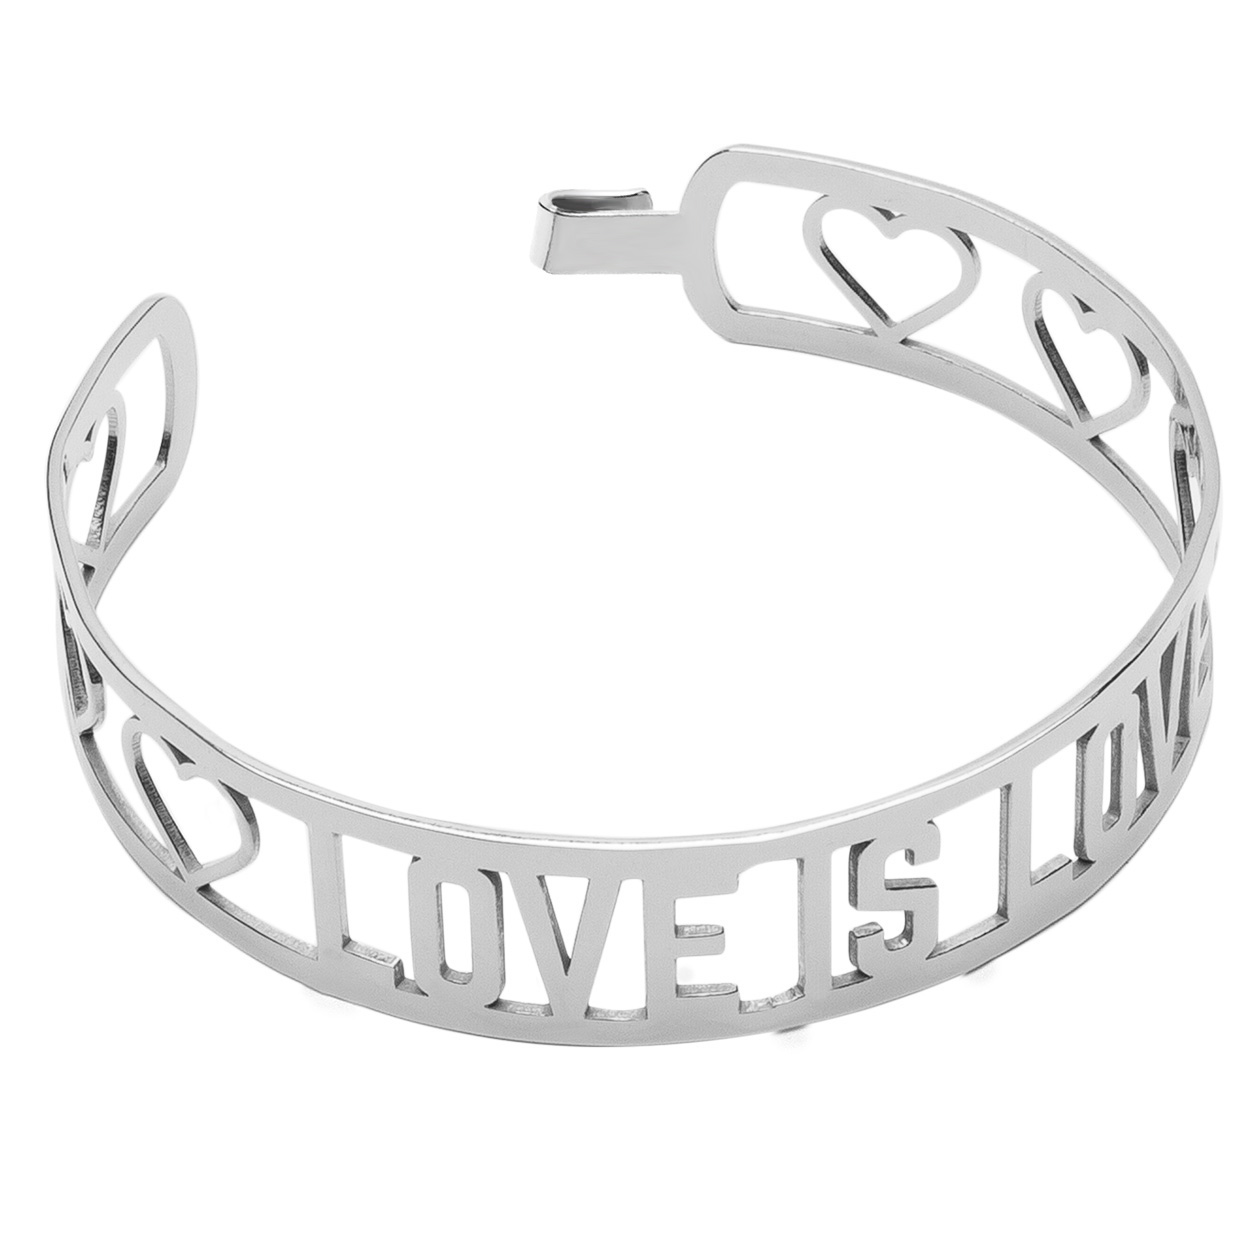 LOVE IS LOVE BANGLE BRACELET, STERLING SILVER 925